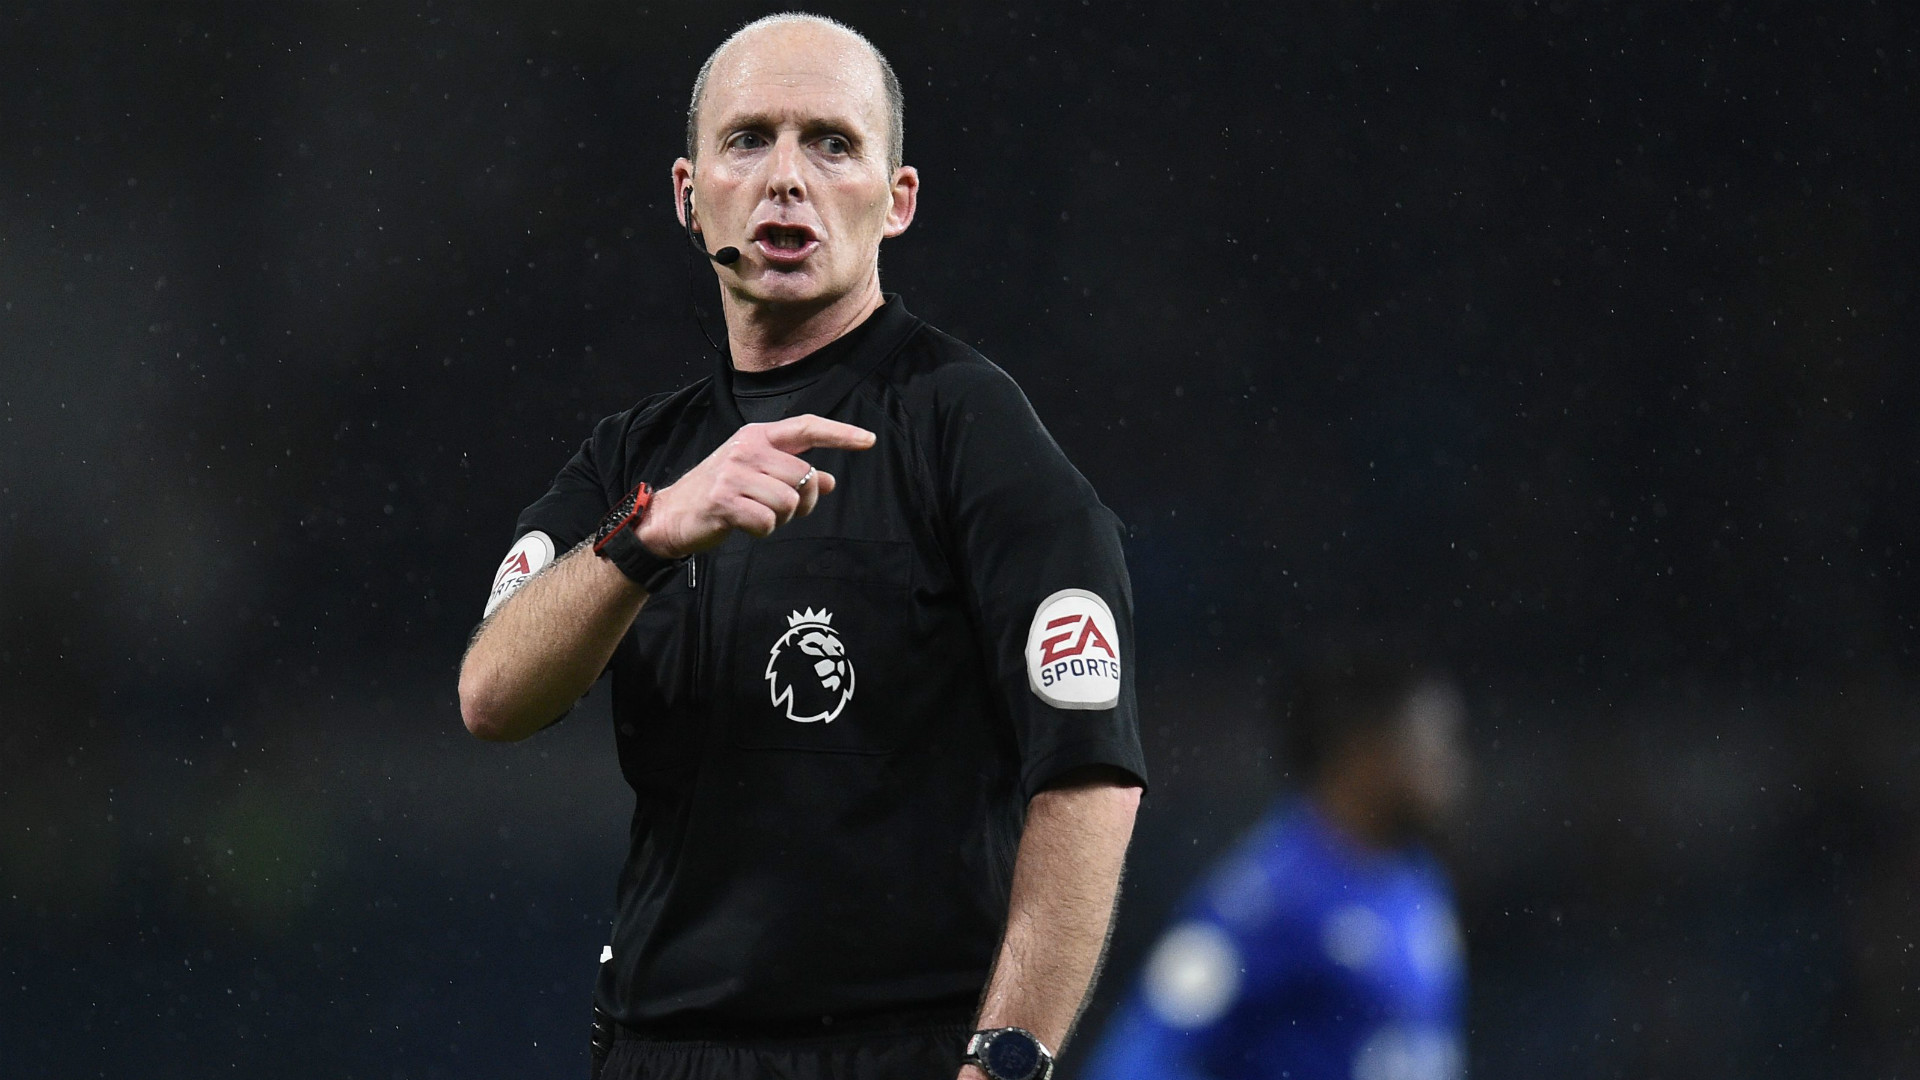 Arsenal fans rage over Mike Dean refereeing North London Derby